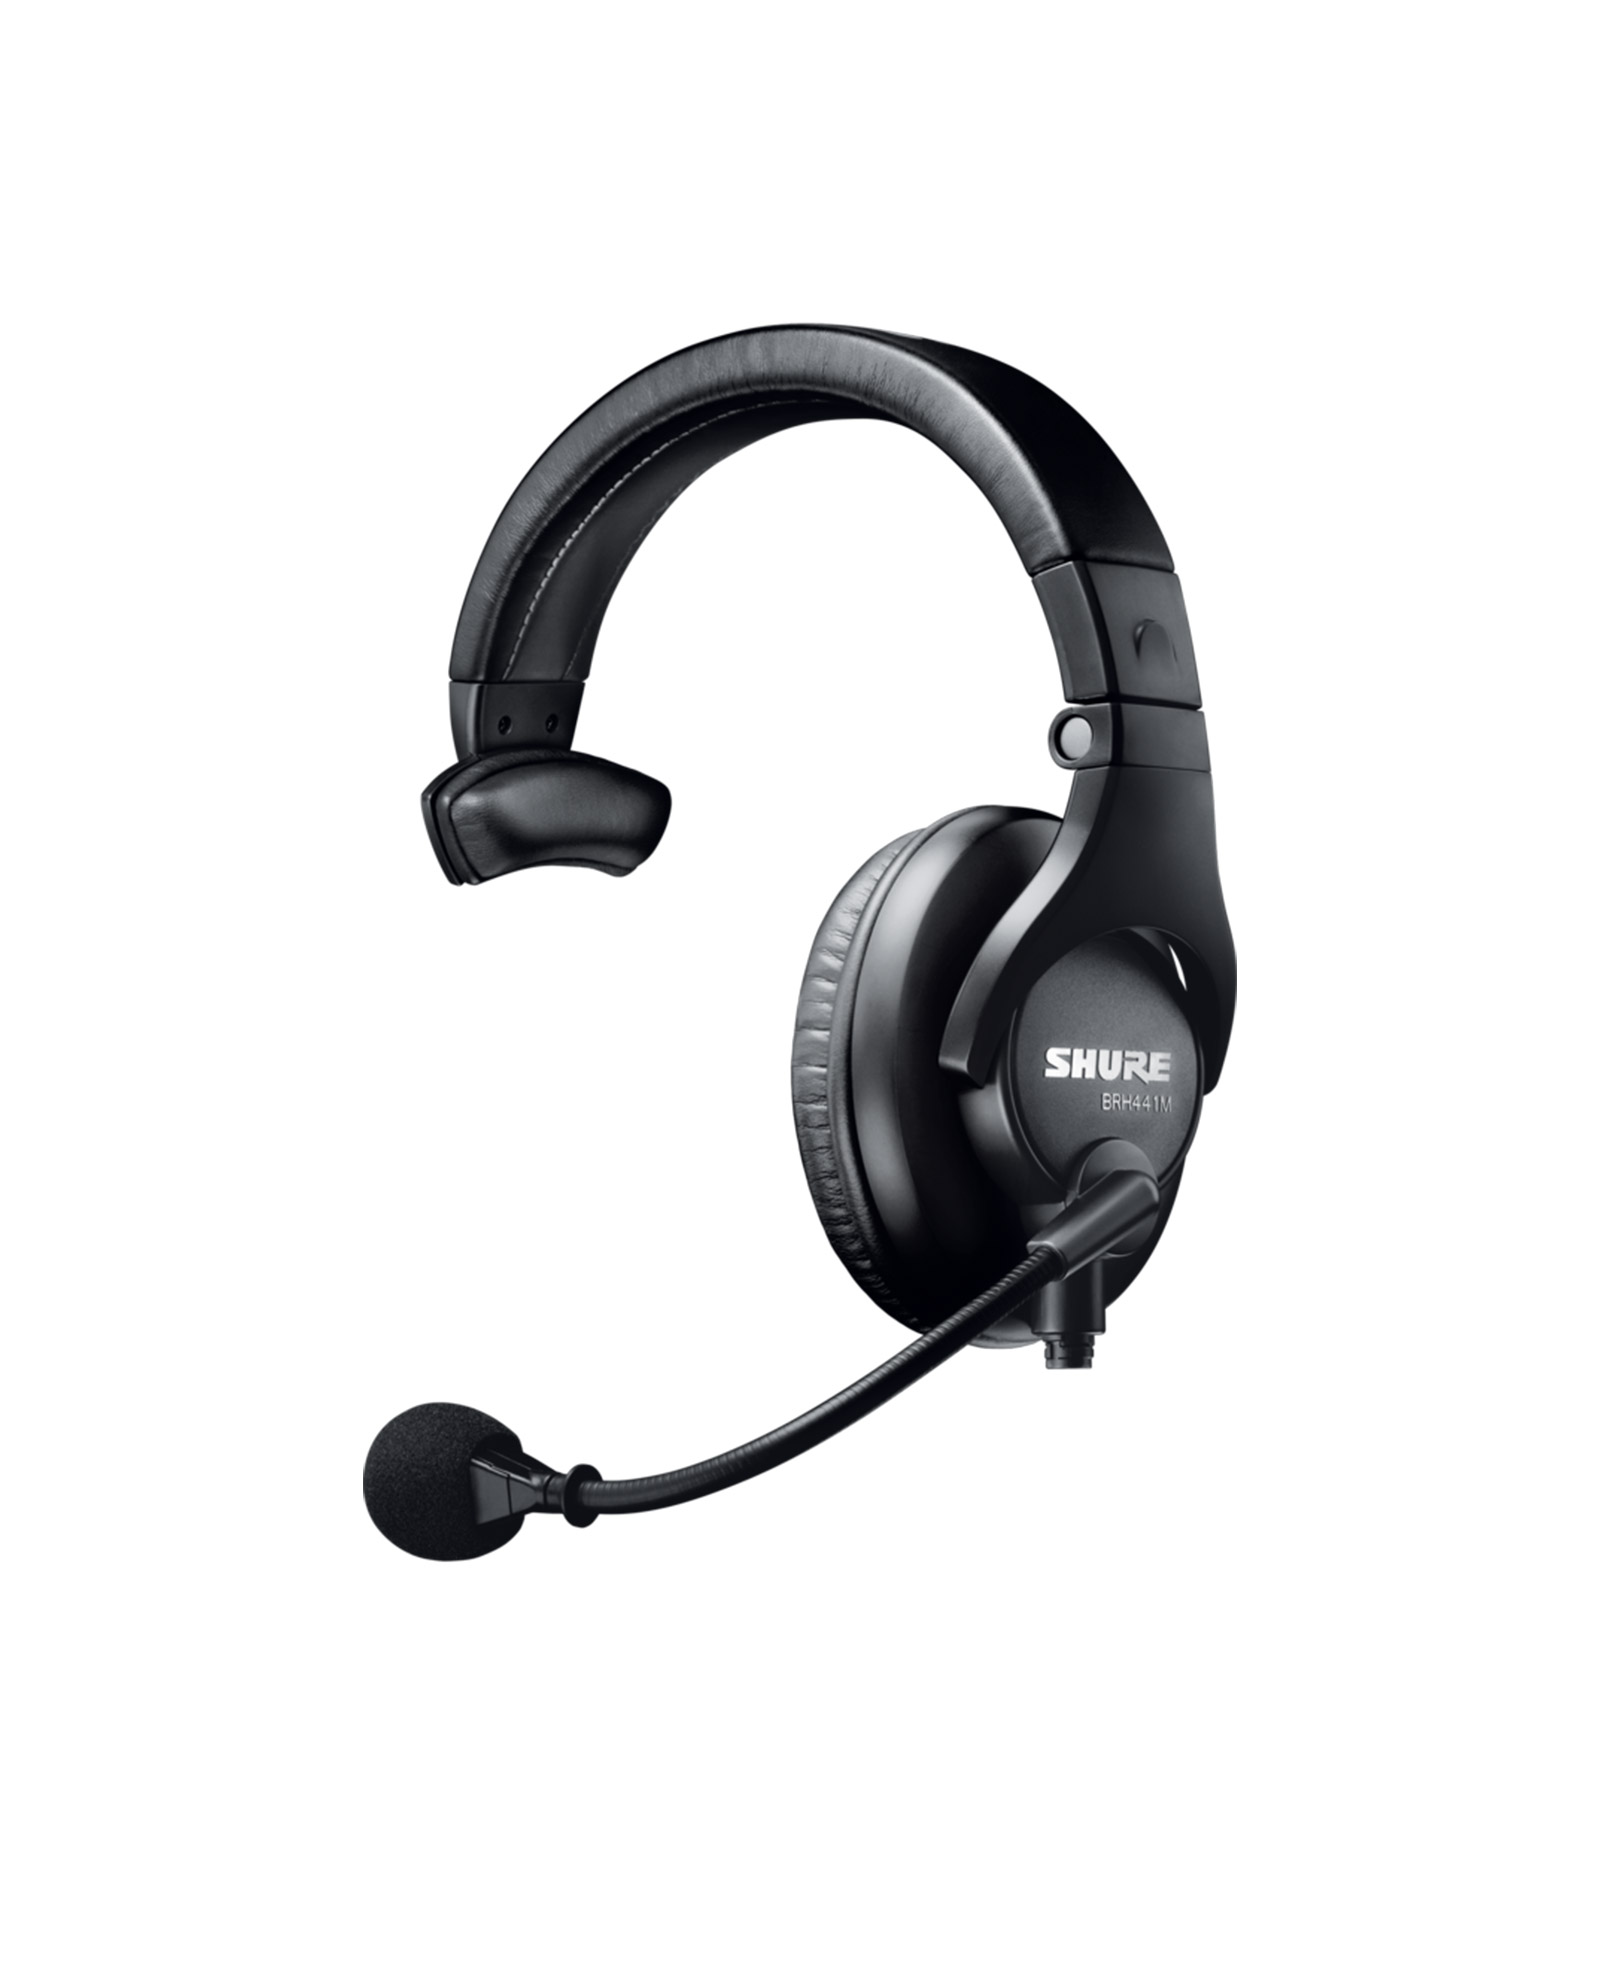 Shure Brh440m Dual Sided Intercom Headset